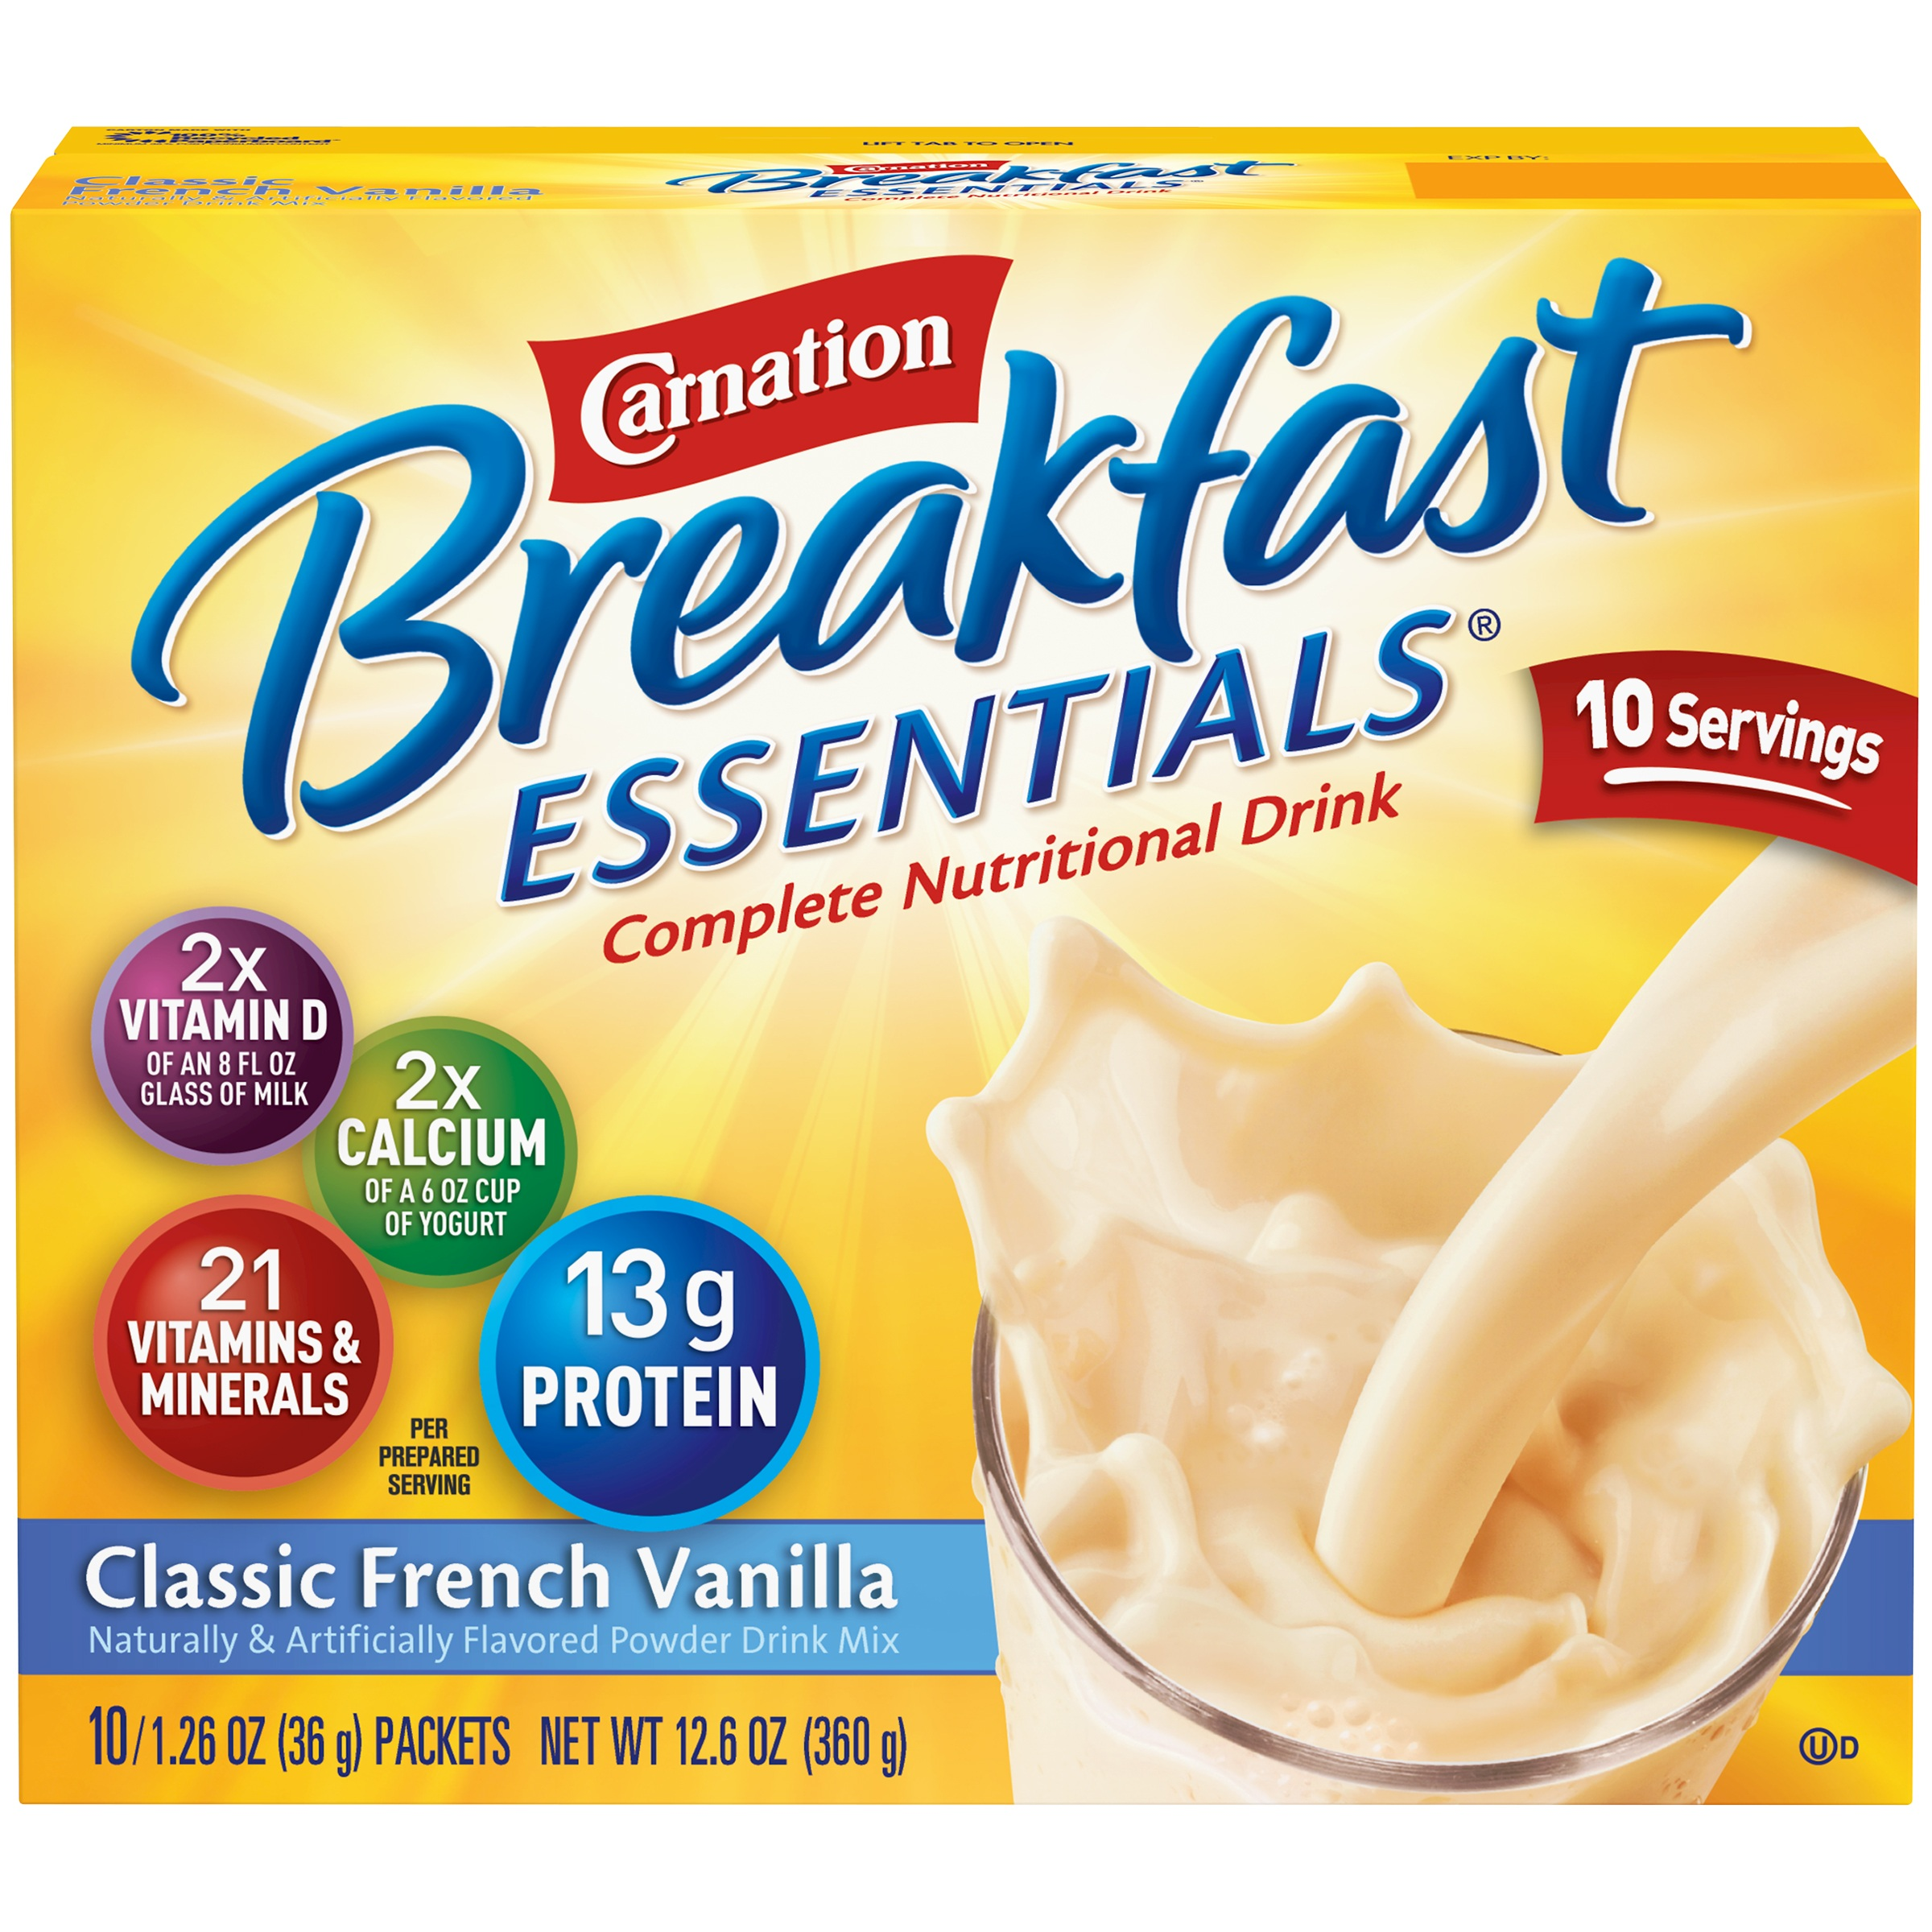 Carnation Breakfast Essentials Powder Drink Mix, Classic French Vanilla, 1.26 oz. Packets, 10 Count